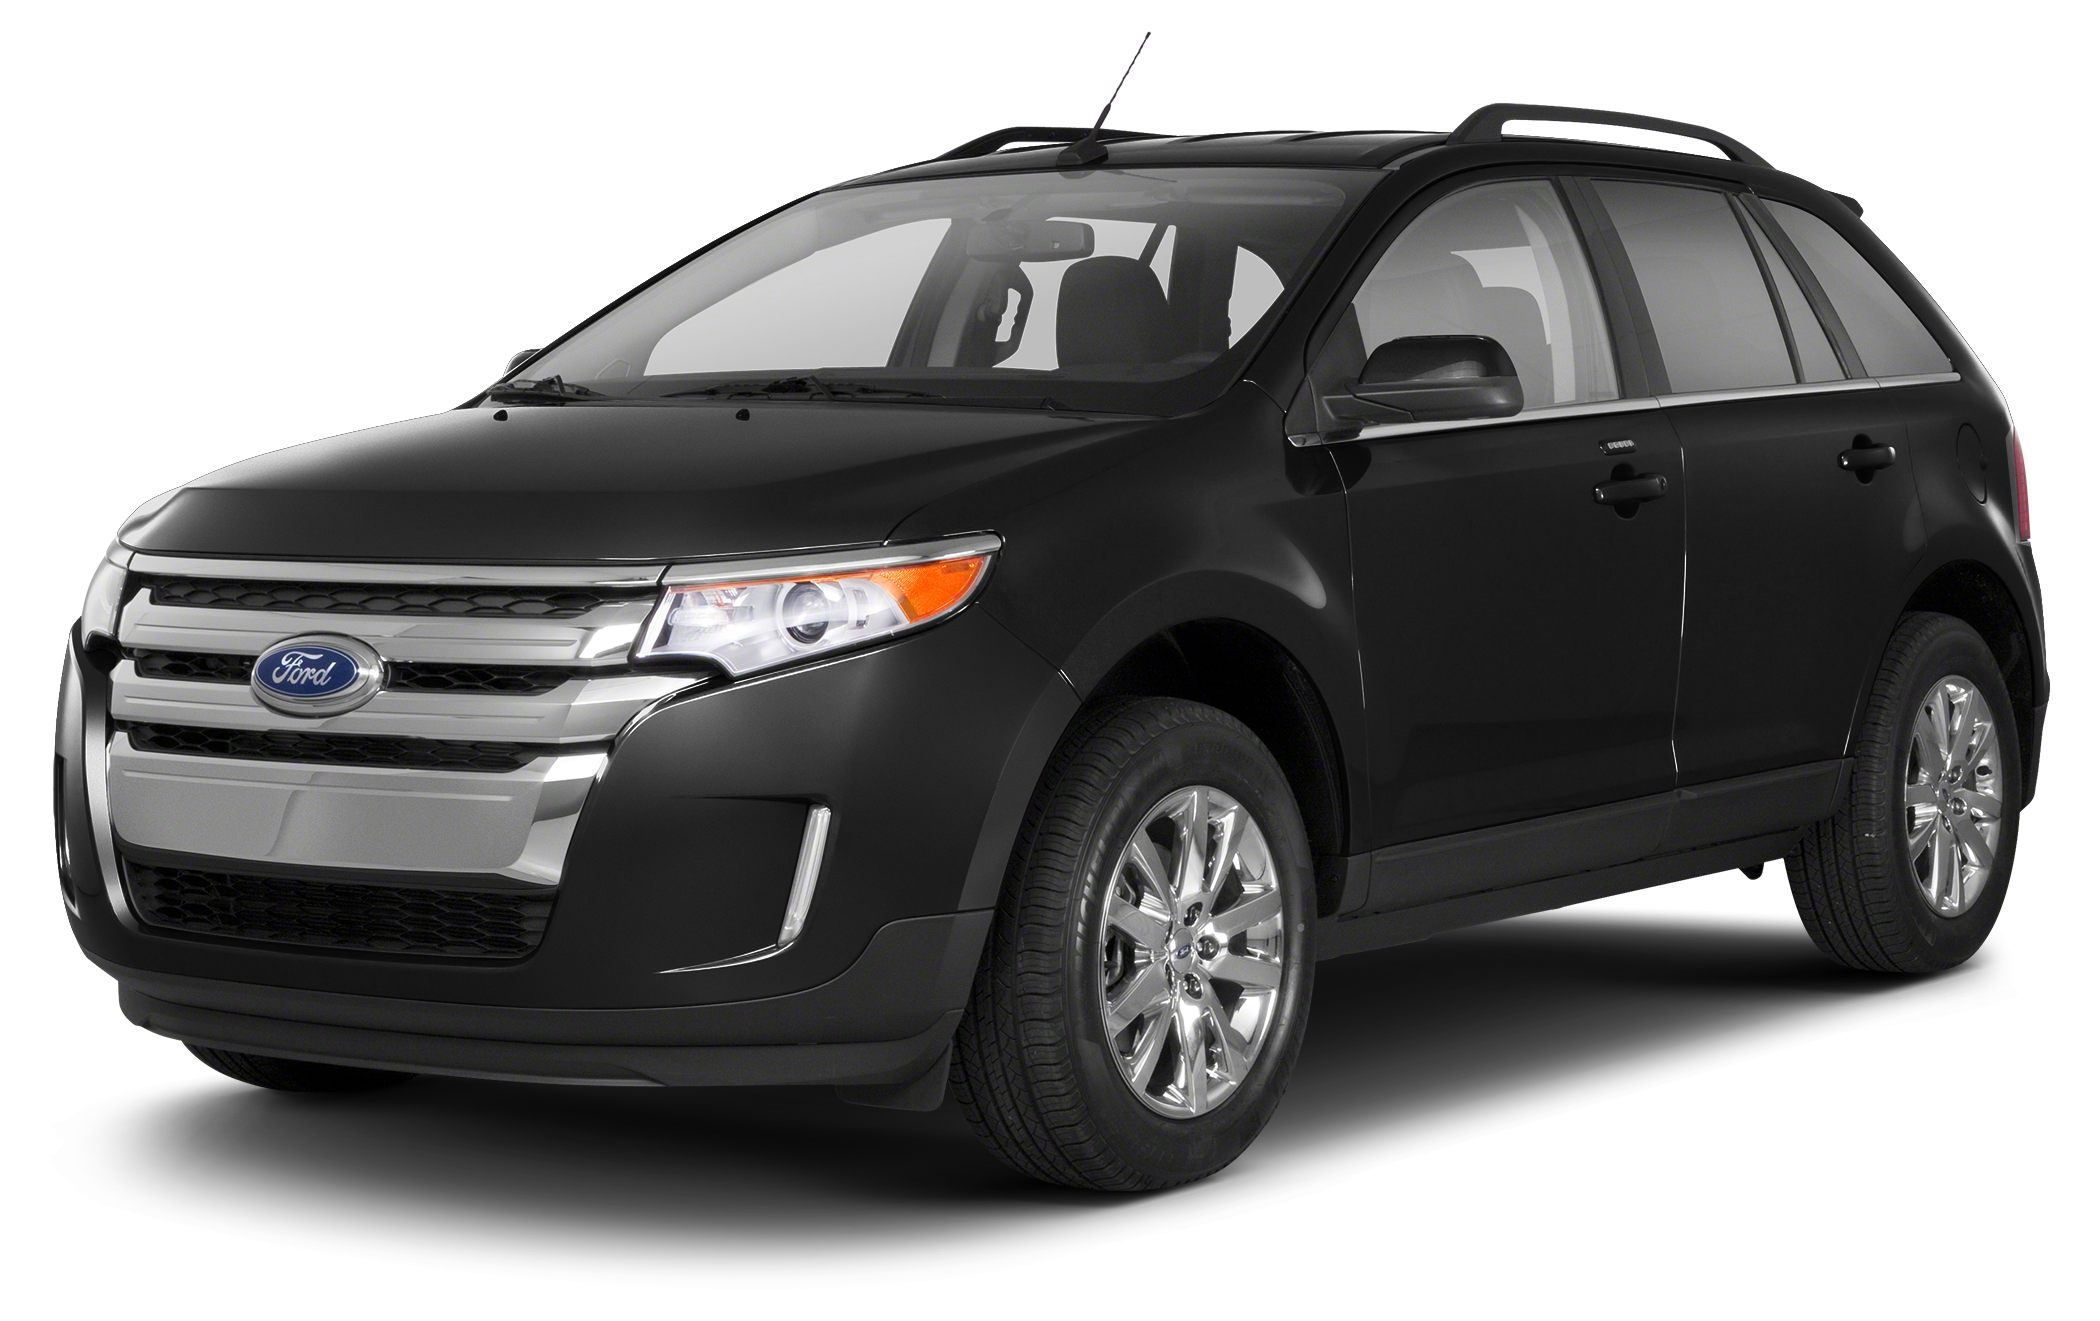 2013 Ford Edge SE Auto Check 1 Owner and Ford Certified Pre-Owned Dont let the miles fool you D